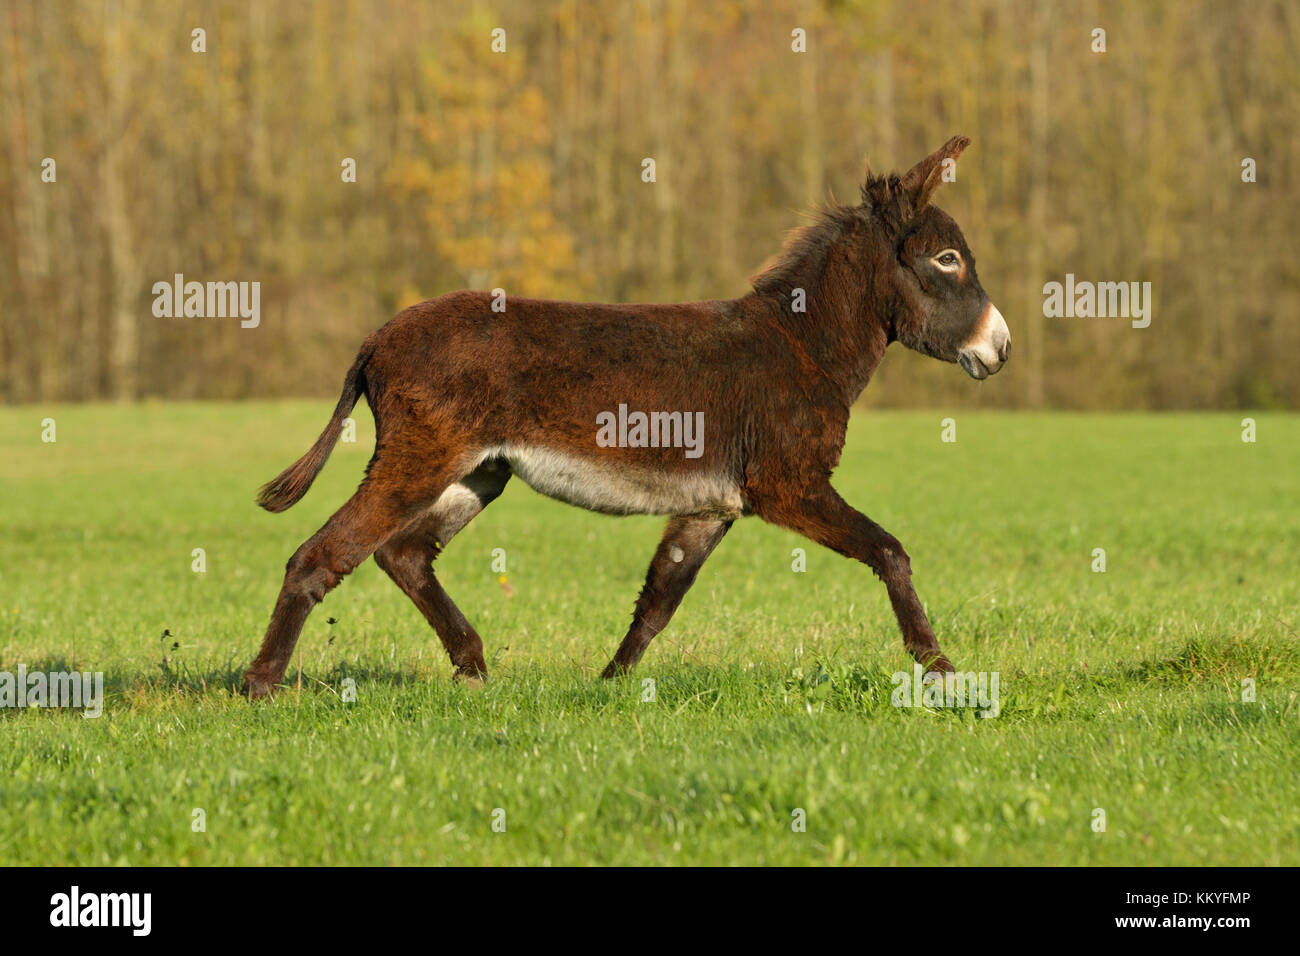 Zwergesel im Herbst auf der Weide / Donkey trotting in the field in autumn - Stock Image